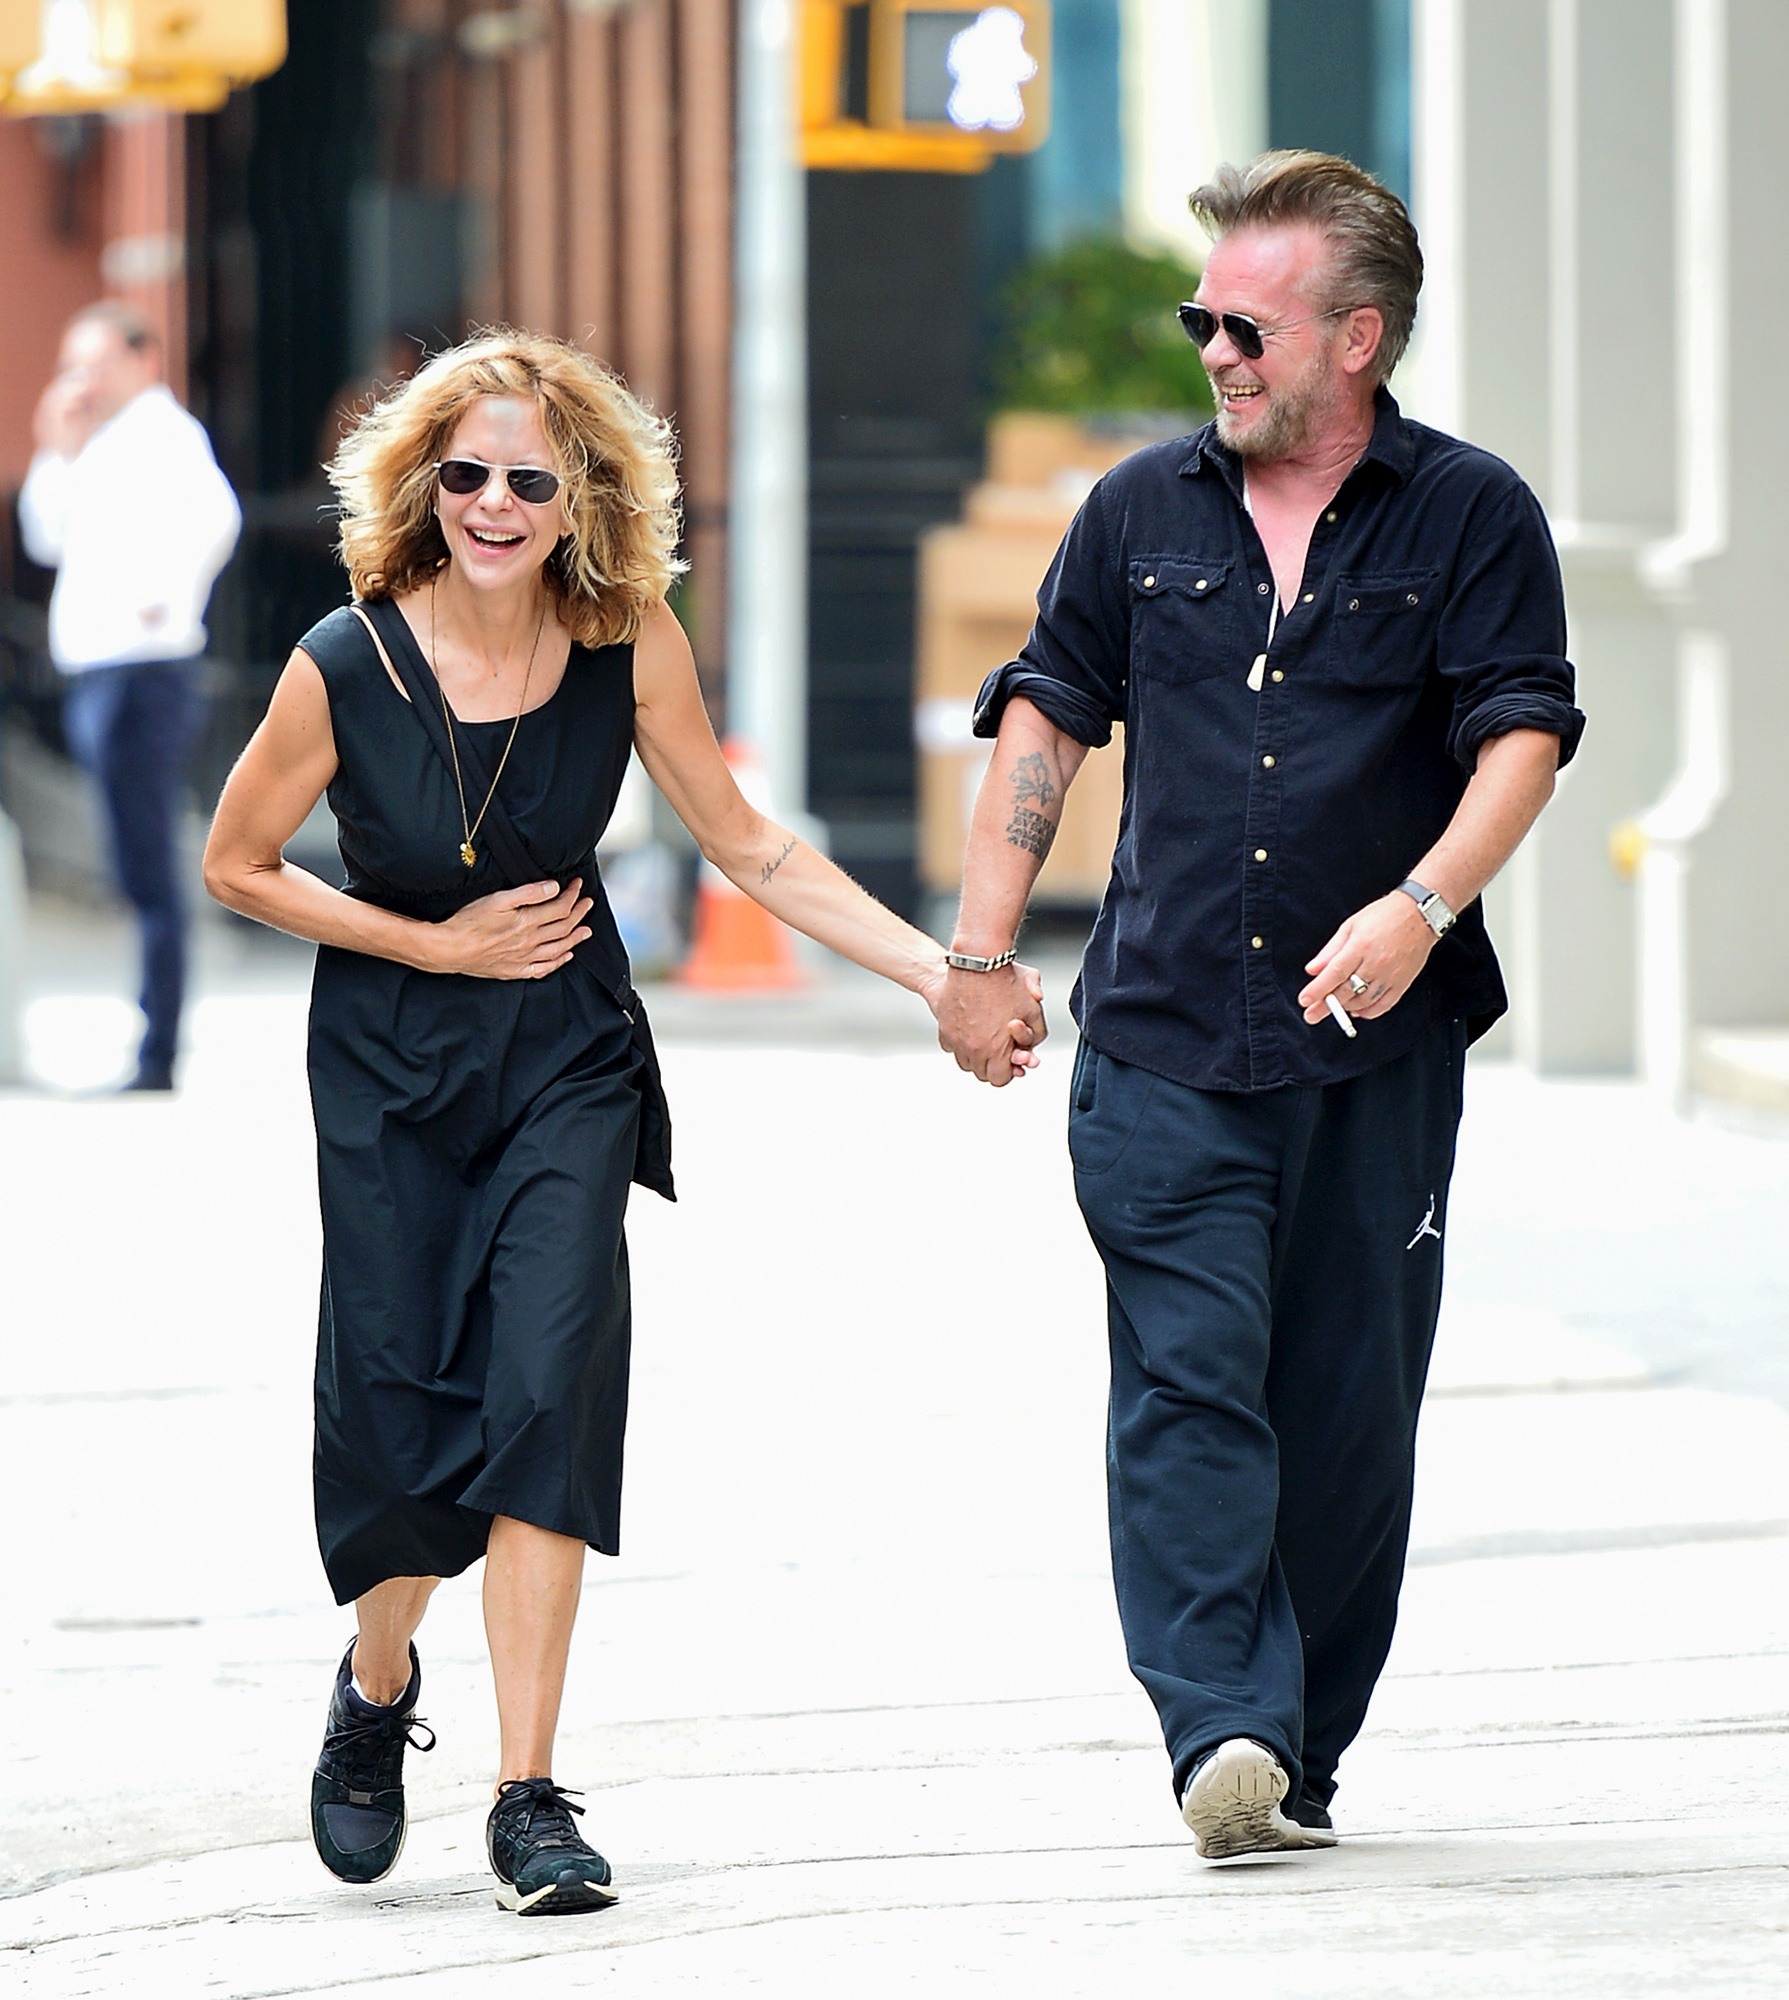 EXCLUSIVE: Meg Ryan and John Mellencamp hold hands and laugh together in NYC